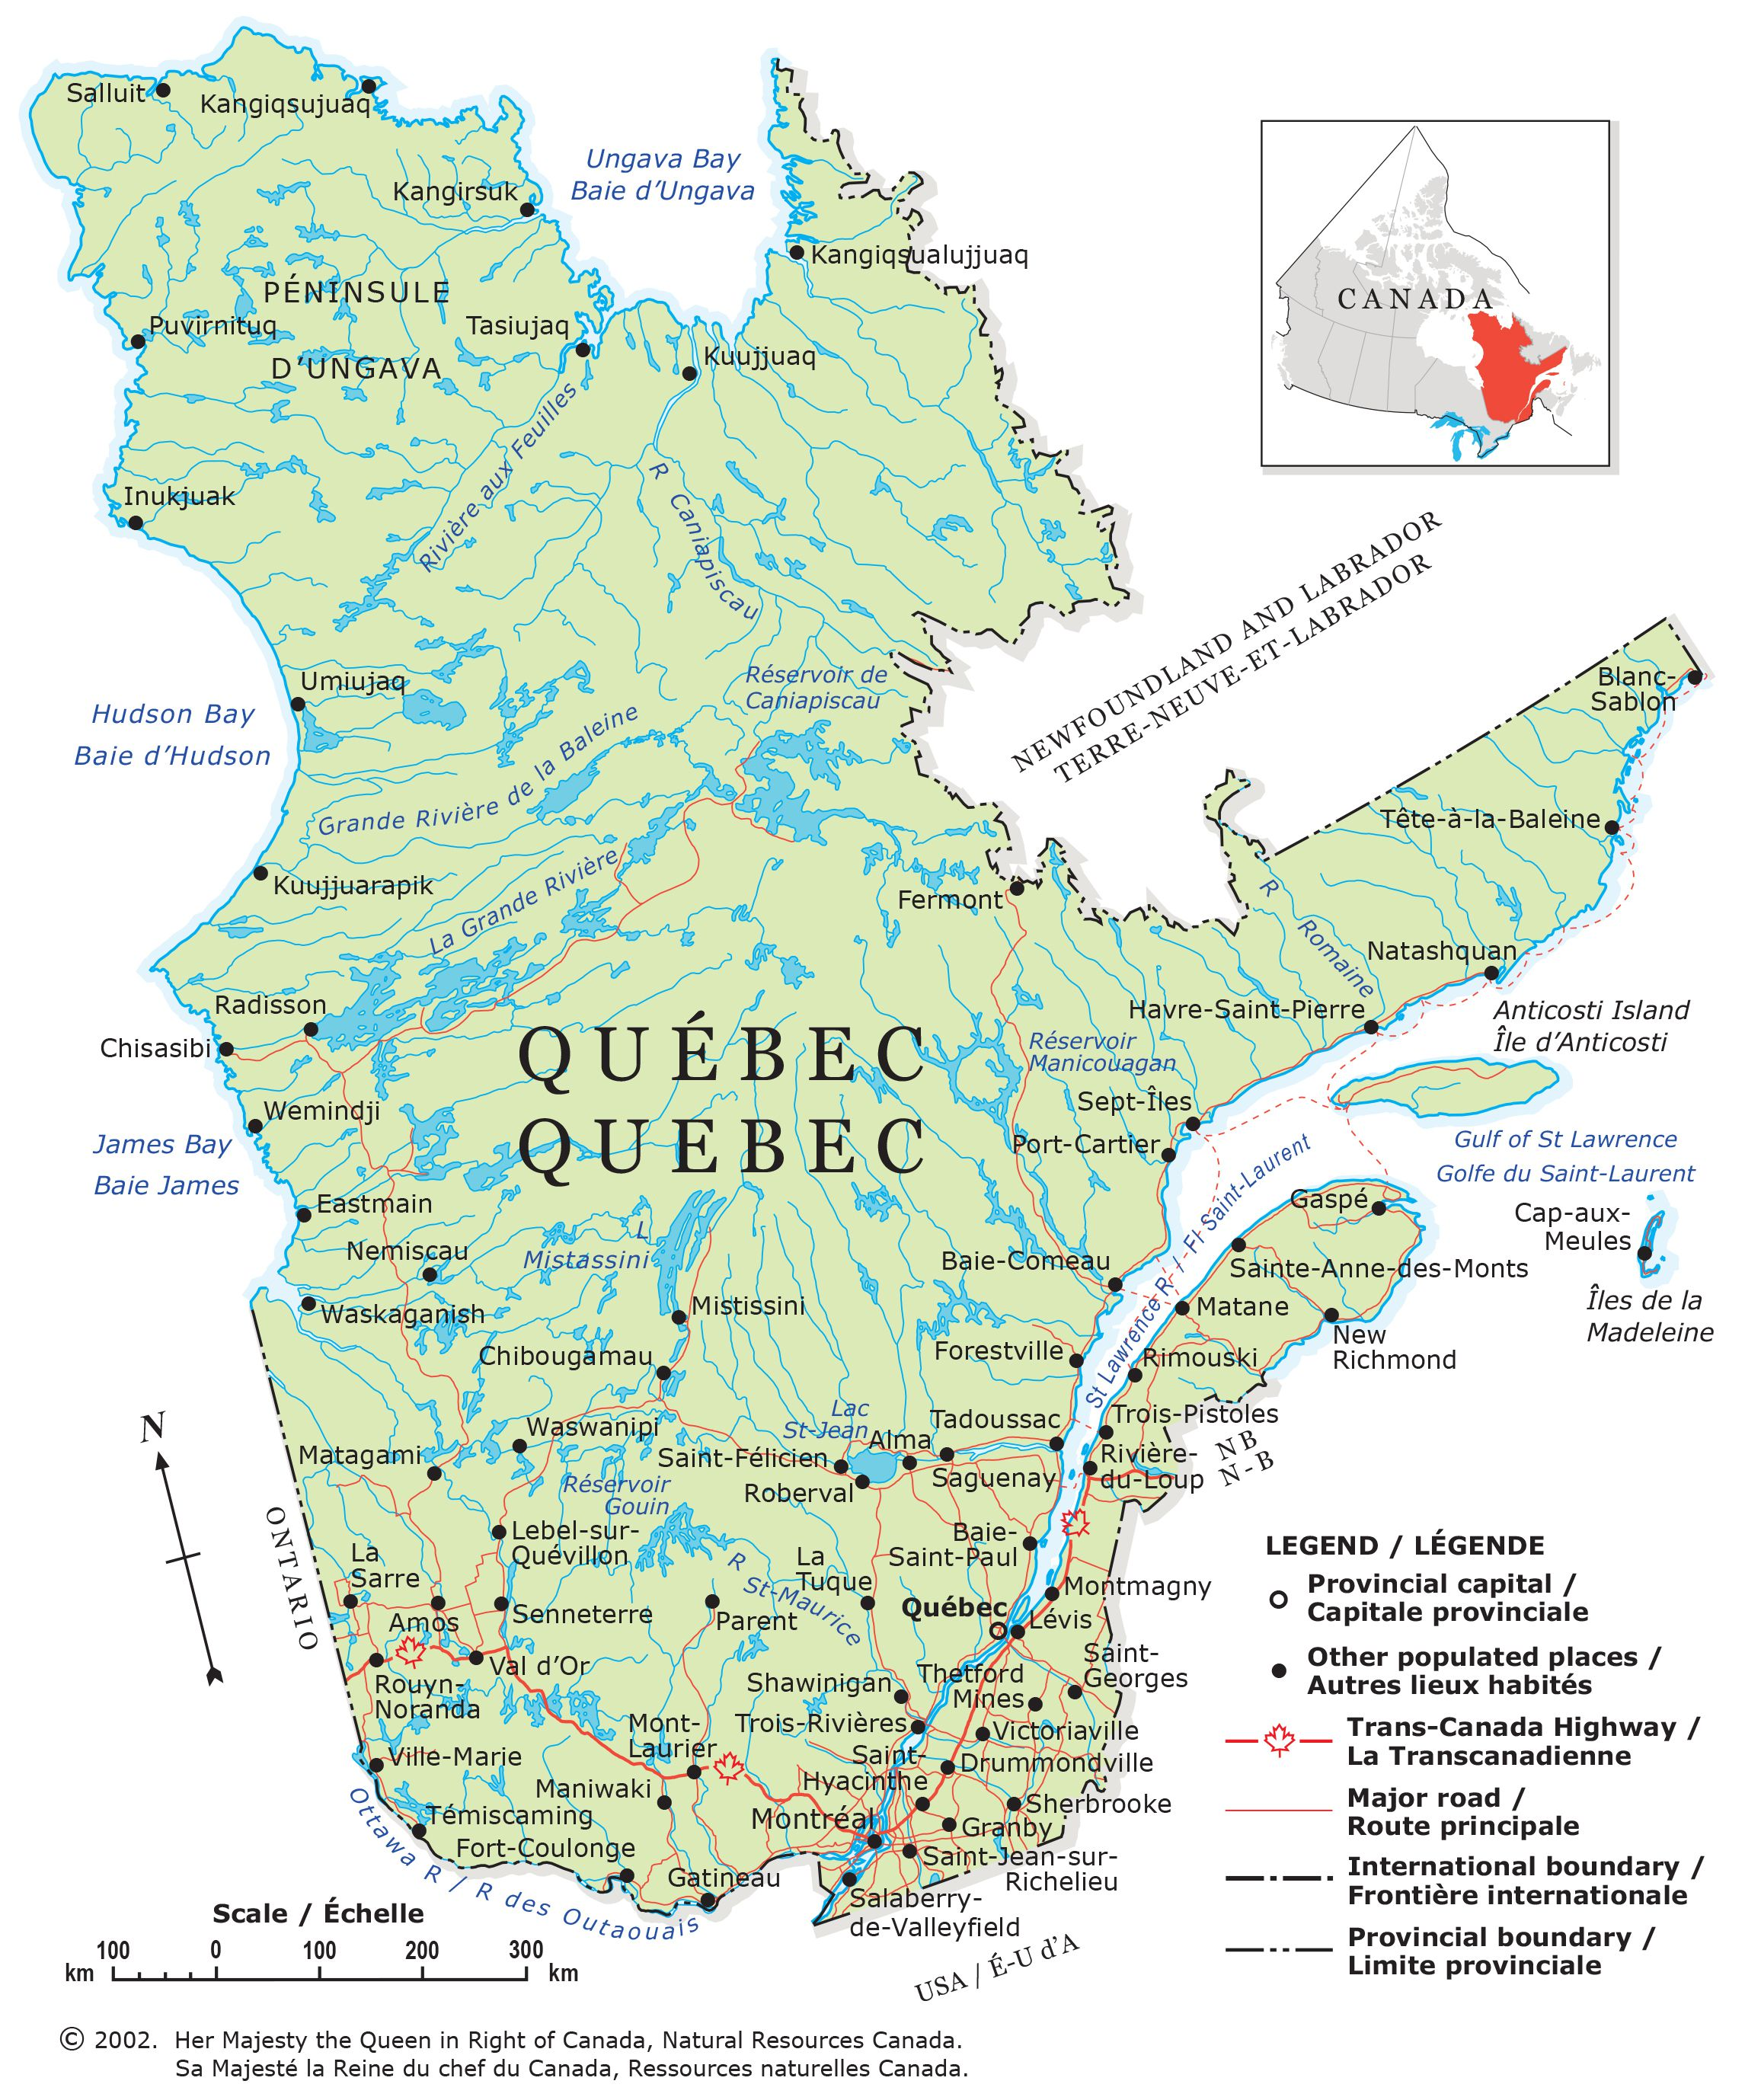 Show Map Of Canada With Its Provinces.Guide To Canadian Provinces And Territories